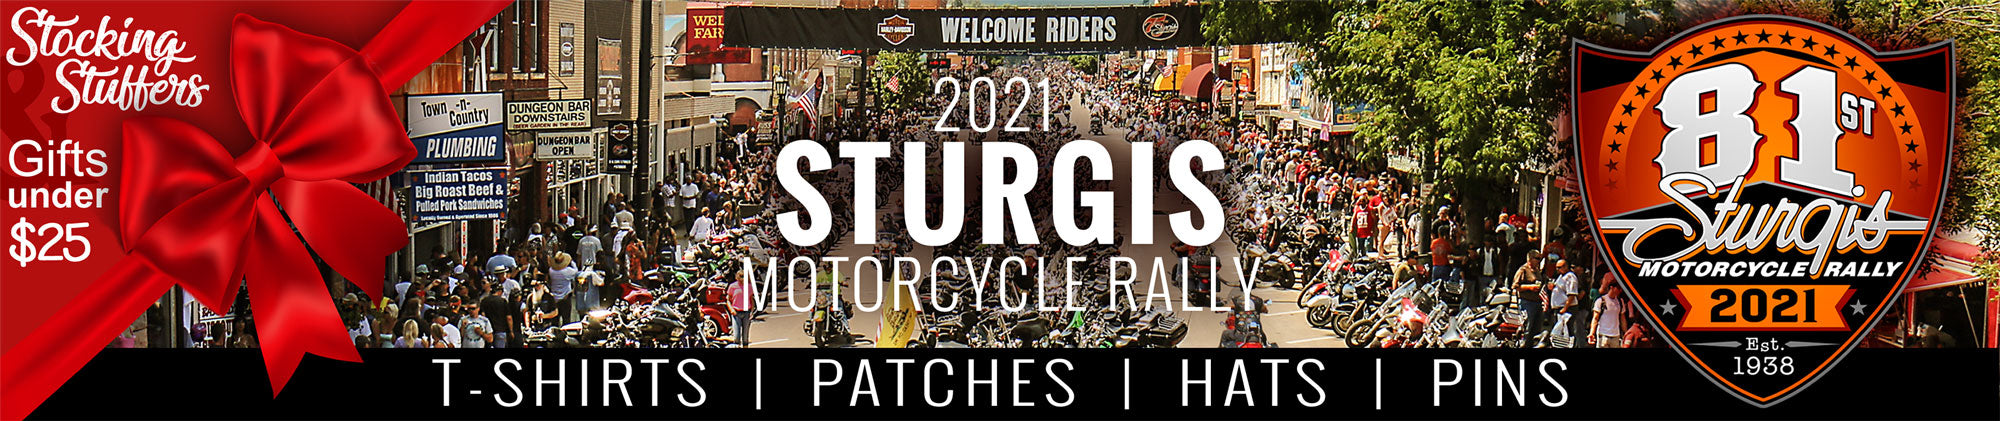 Sturgis Motorcycle Rally Offical Merchandise